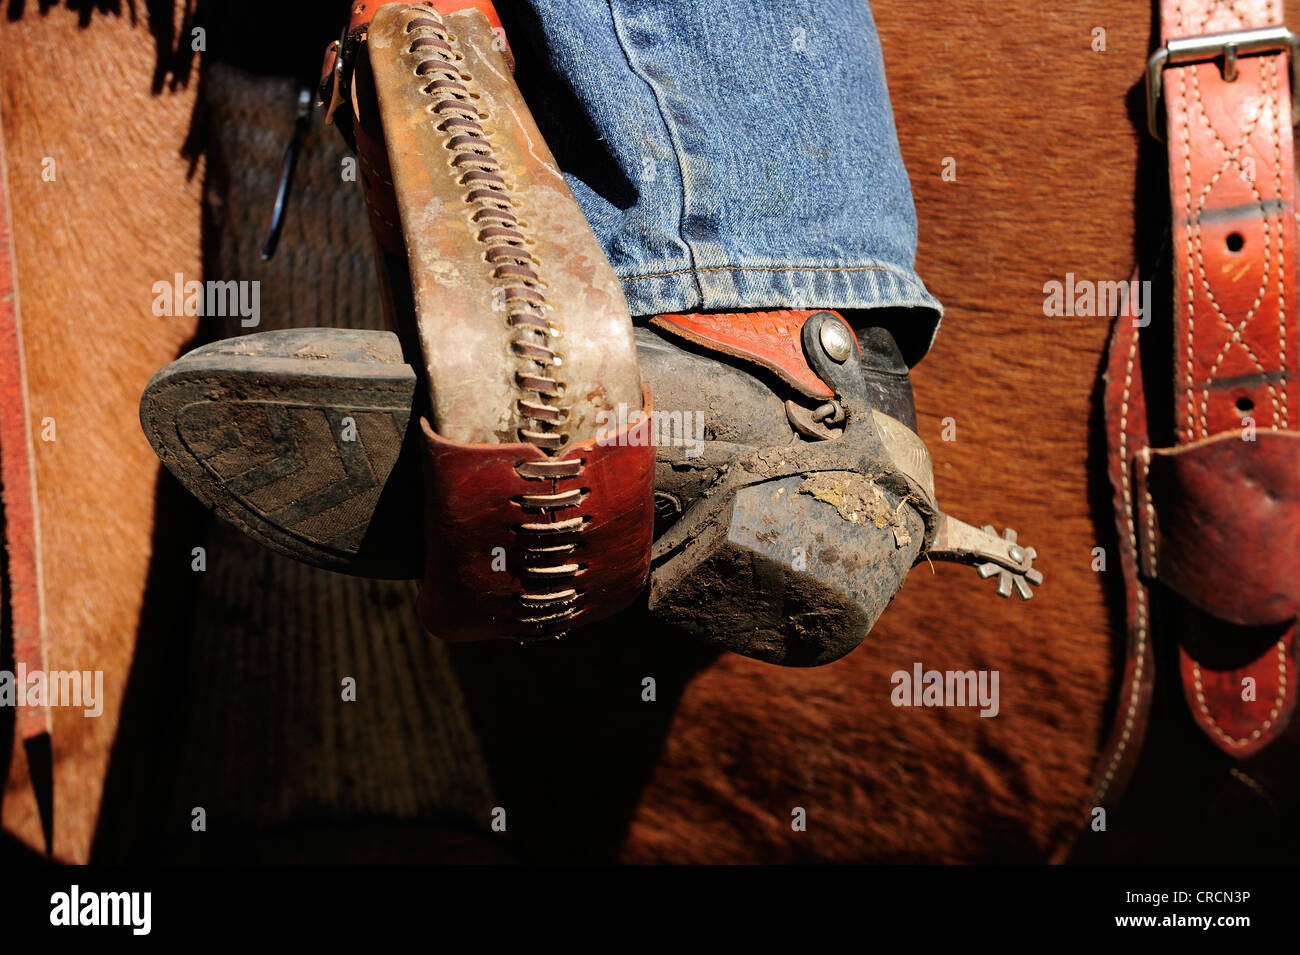 Cowboy boots with spurs in the stirrup - Stock Image